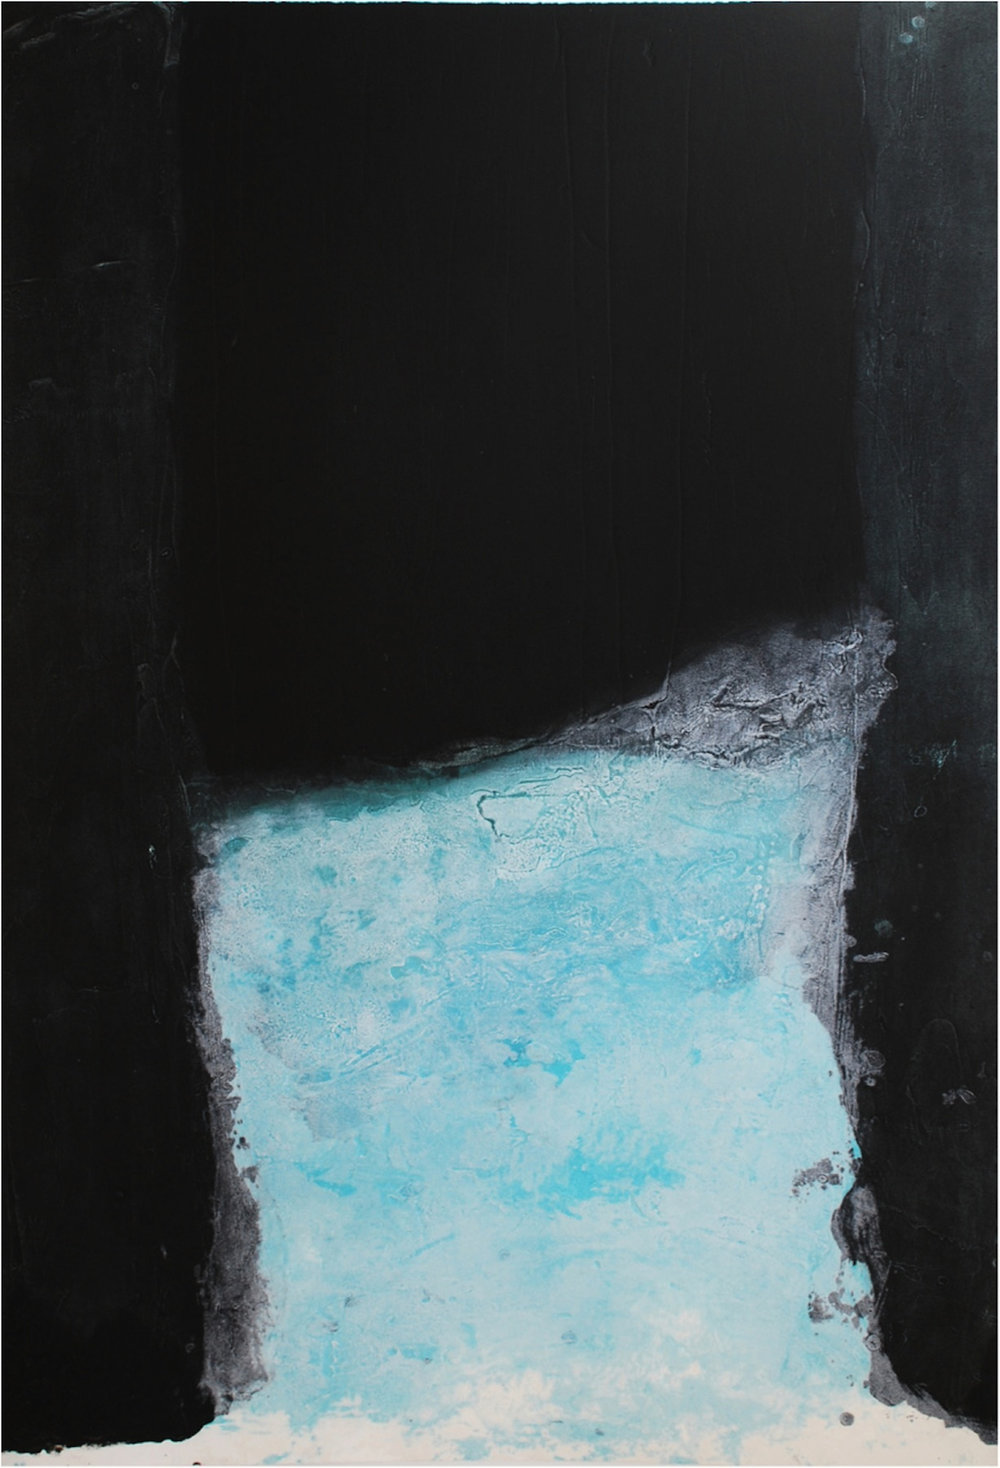 Gwen O'Dowd , Spaces II  Carborundum, sheet and image 125 x 85cm, €1270.00 unframed